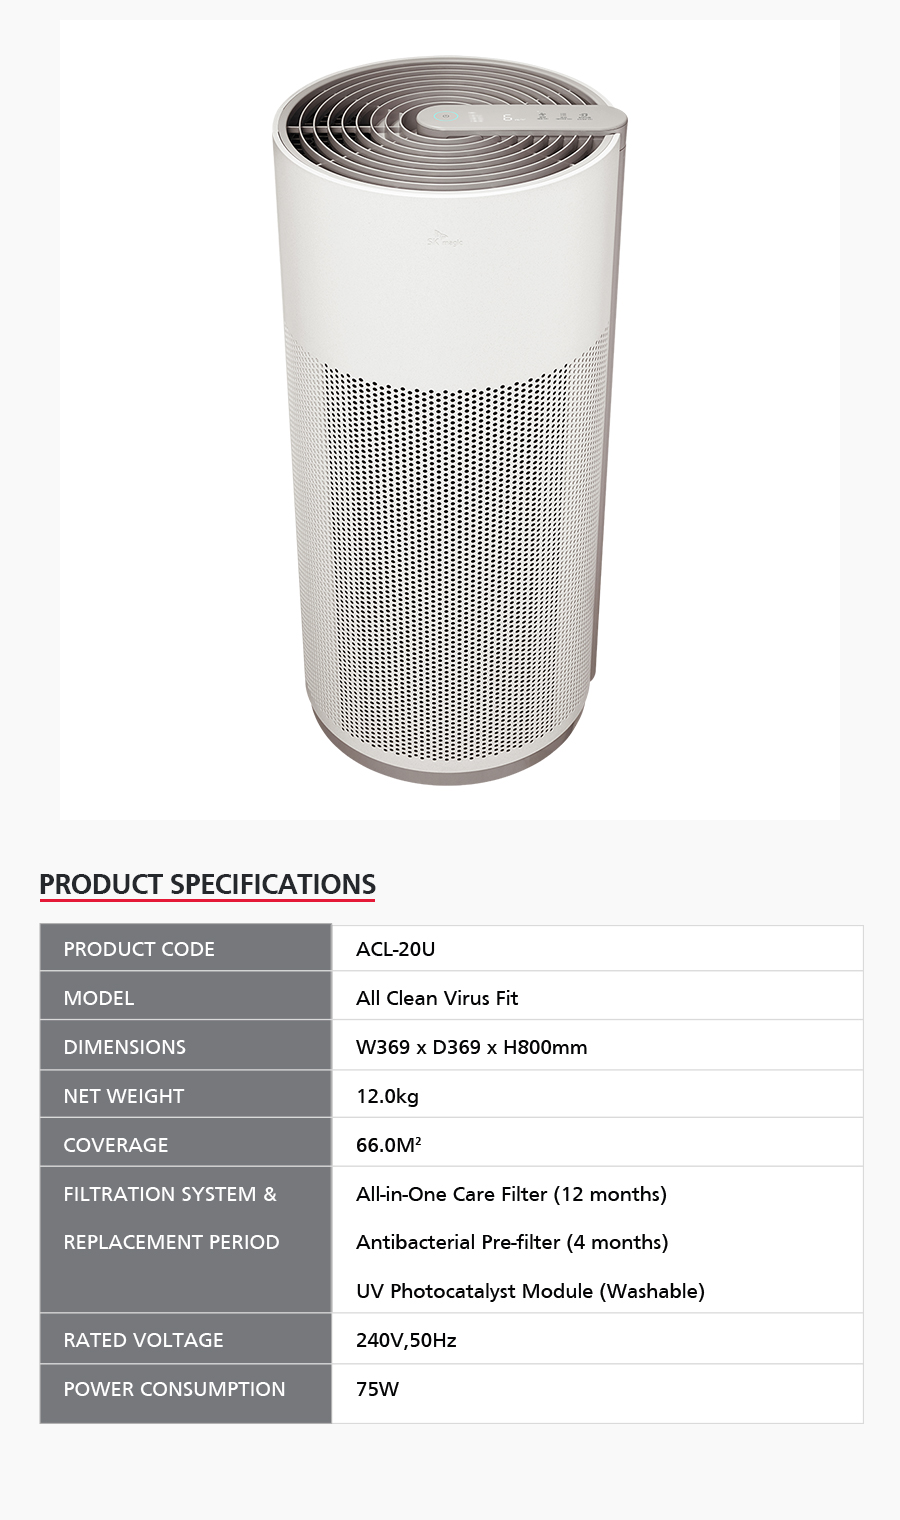 Product Specifications ACL-20U All Clean Virus Fit All-in-One Care Filter (12 months) Antibacterial Pre-filter (4 months) UV Photocatalyst Module (Washable)